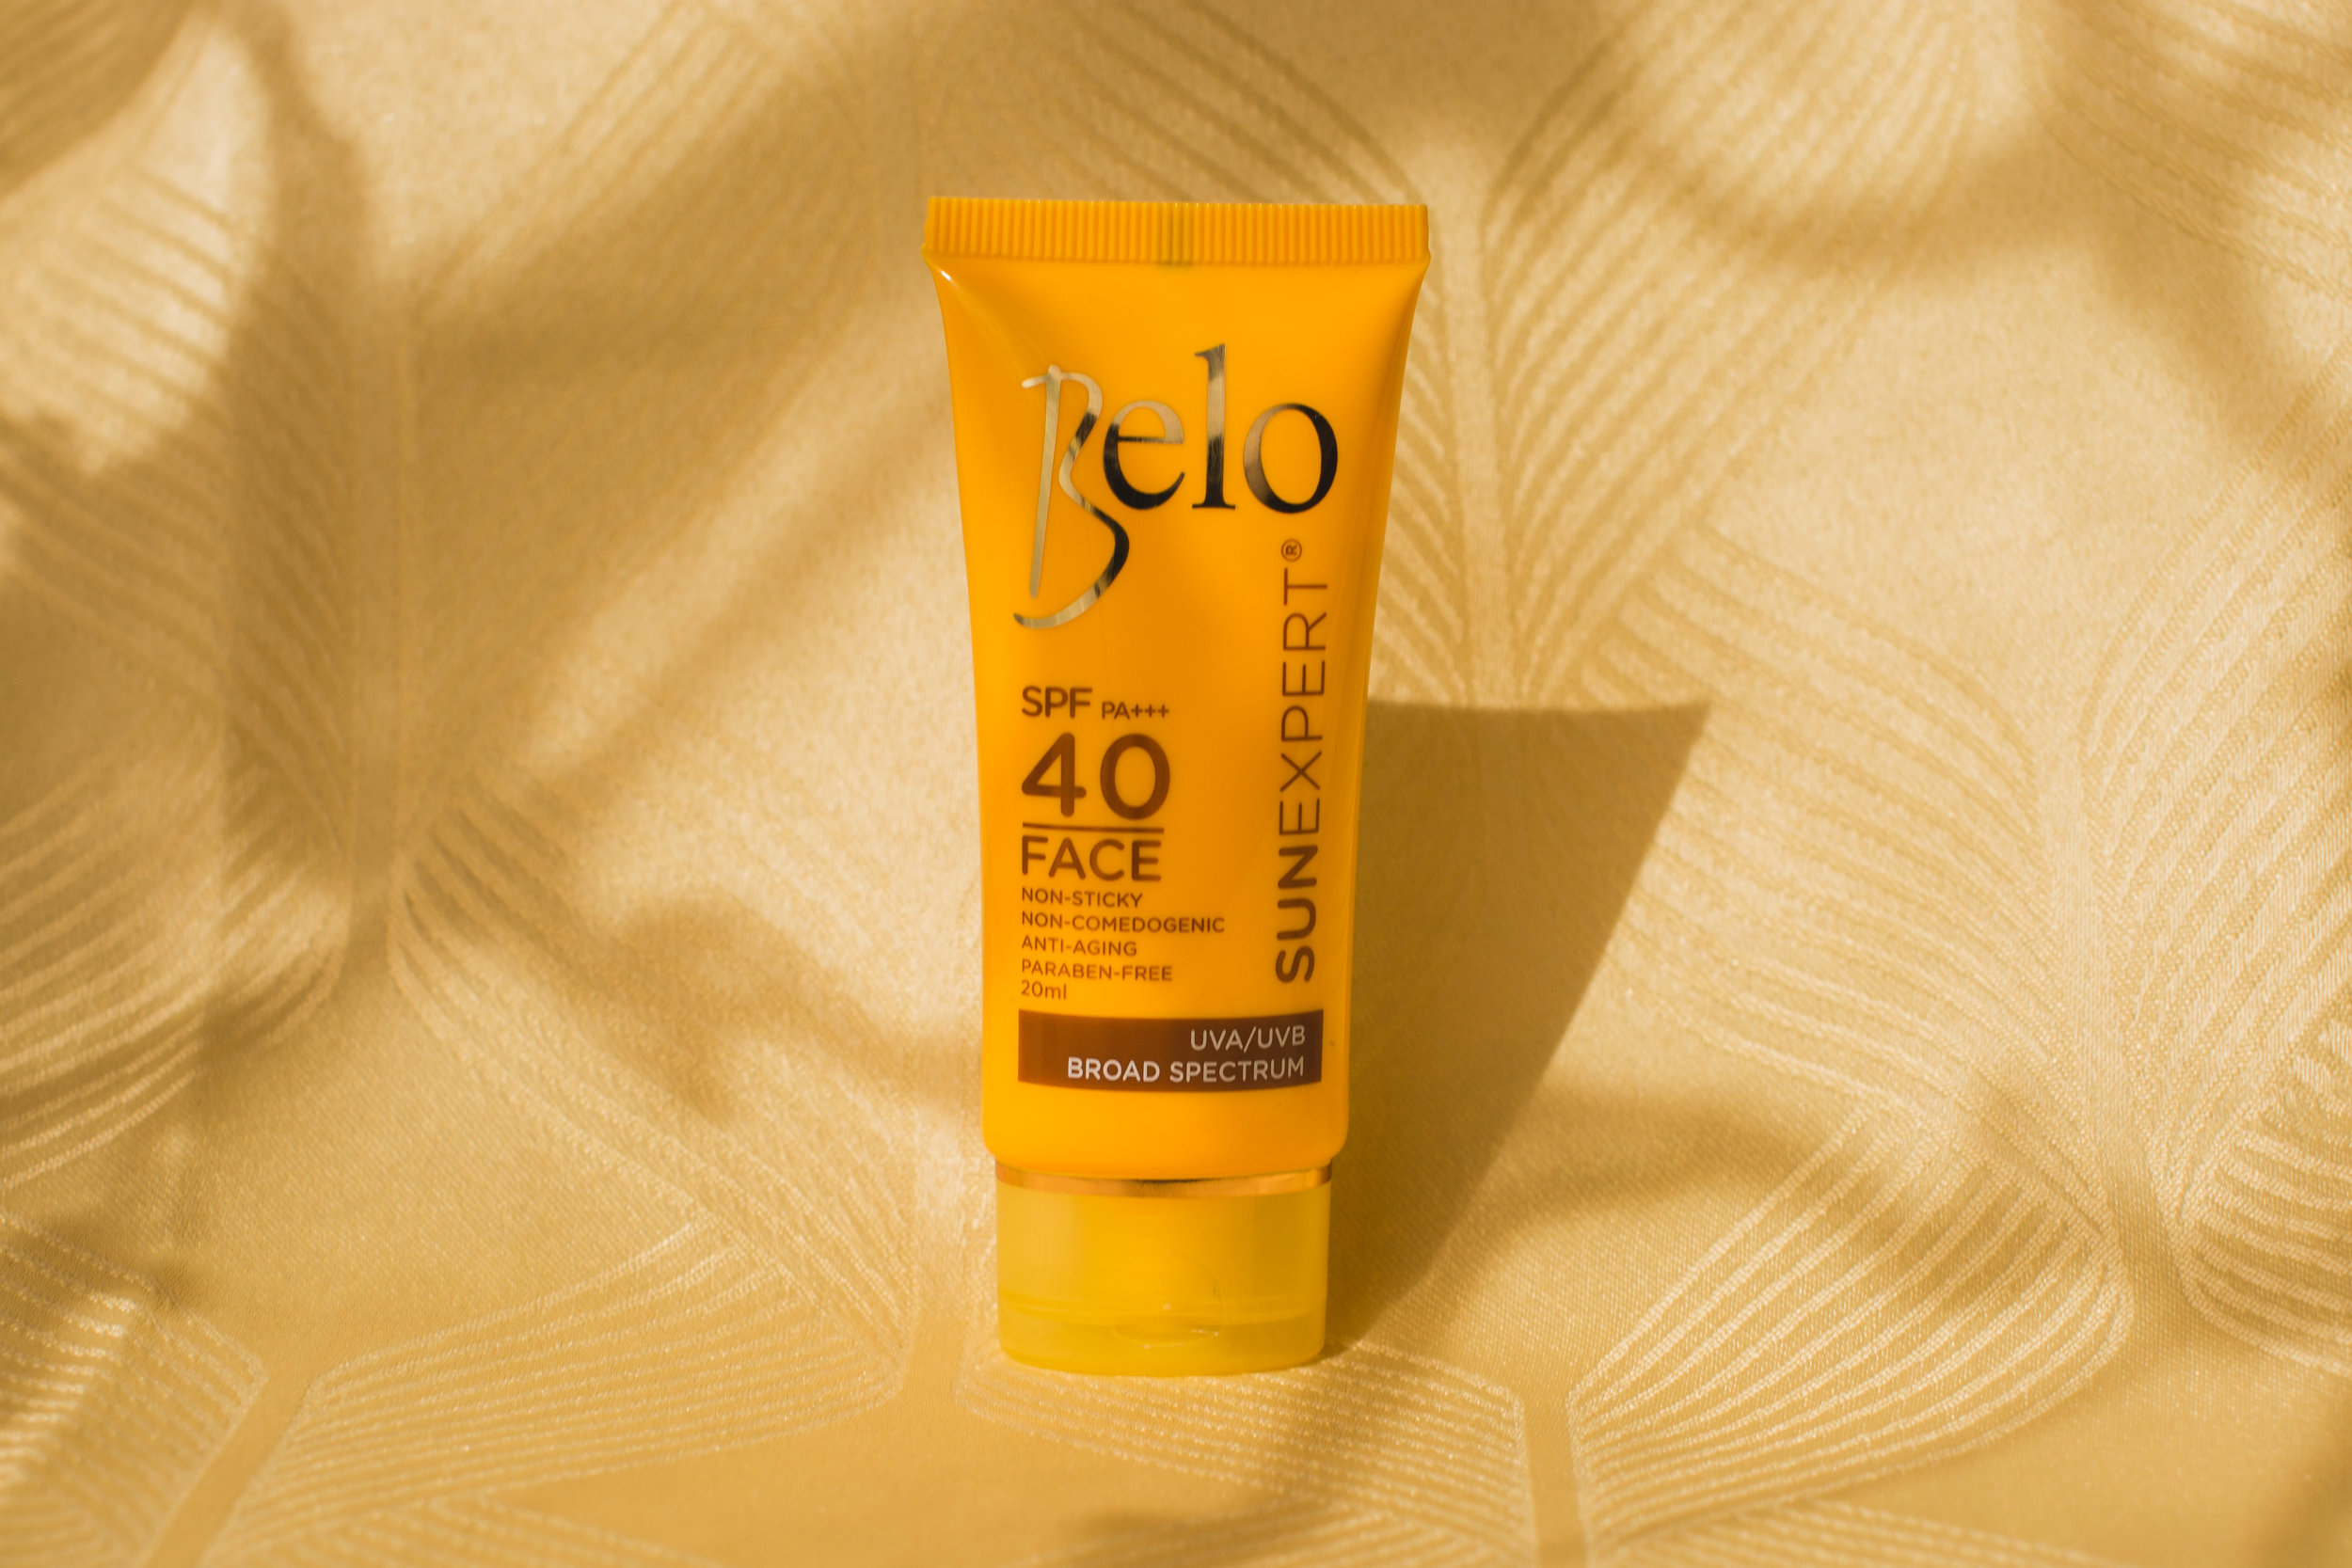 local-sunscreens-face-and-body_dermplus-celeteque-kojie-san-maxipeel-belo_review-philippines_2019-4.jpg